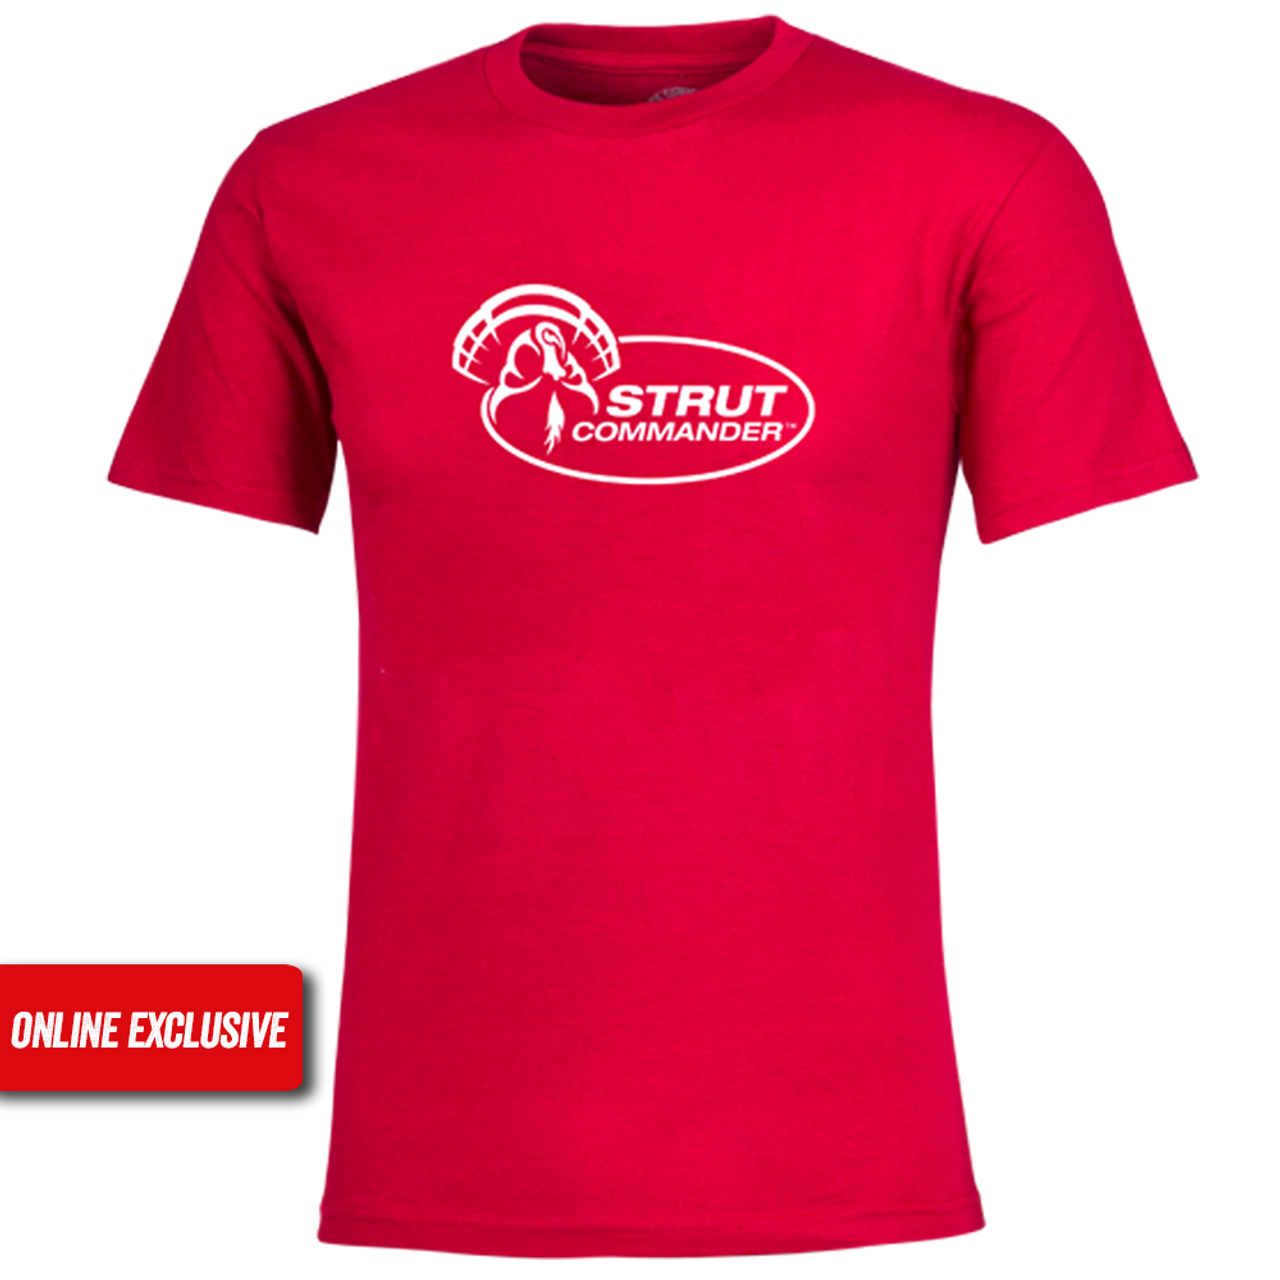 Red, 100% cotton Strut Commander short sleeve tee with the full Strut Commander logo screen printed in white.